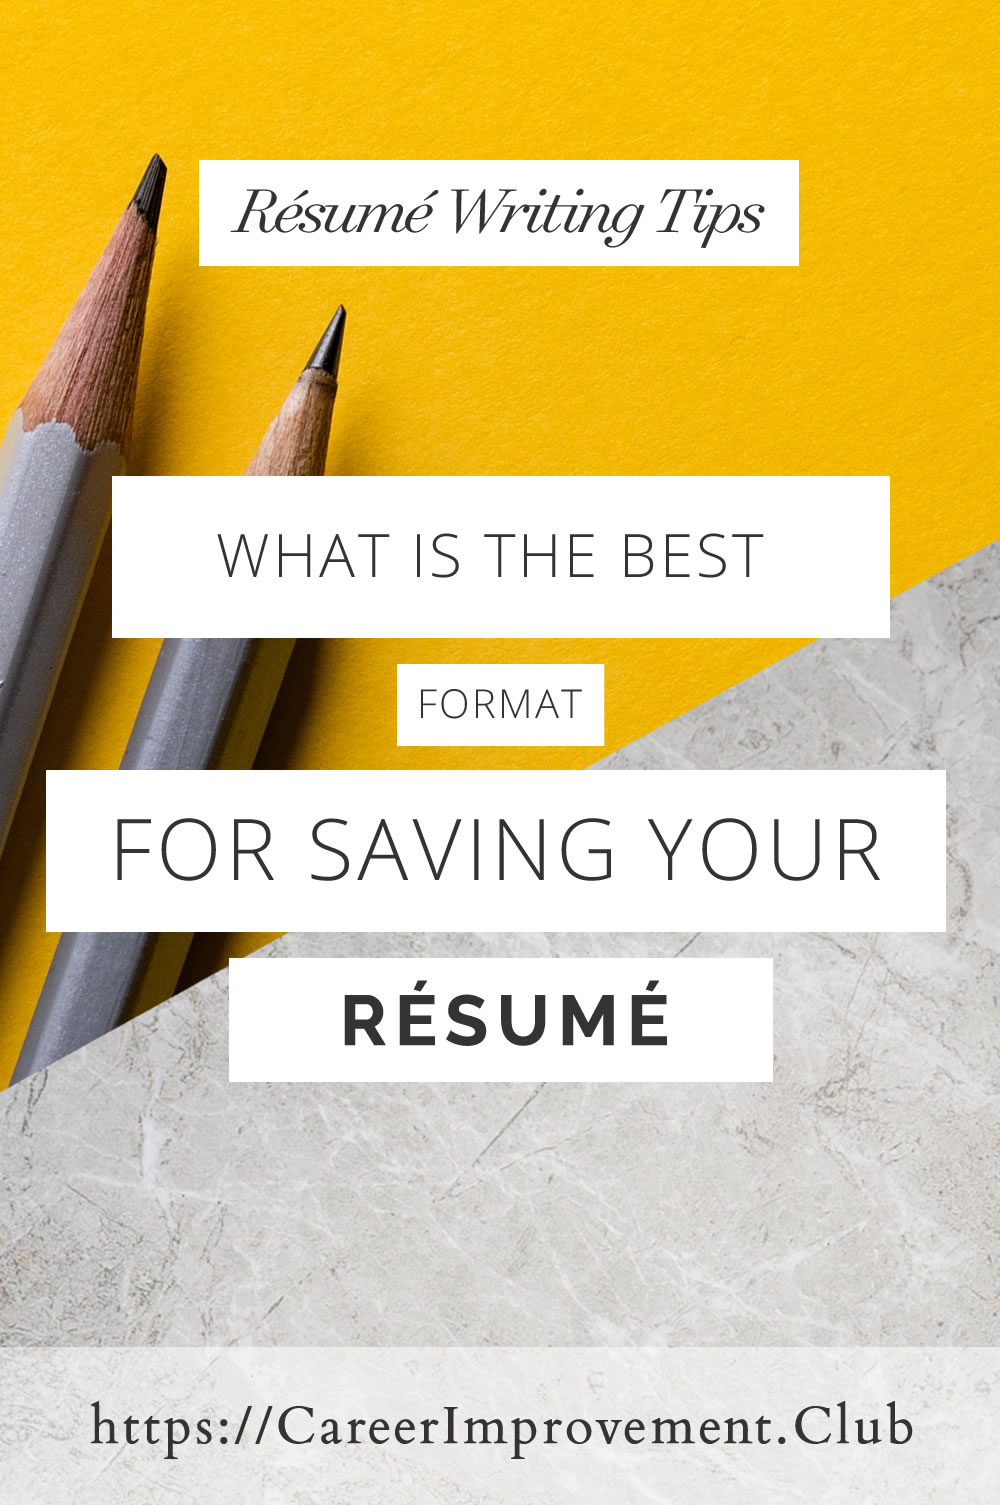 What is the best format for a resume.jpg